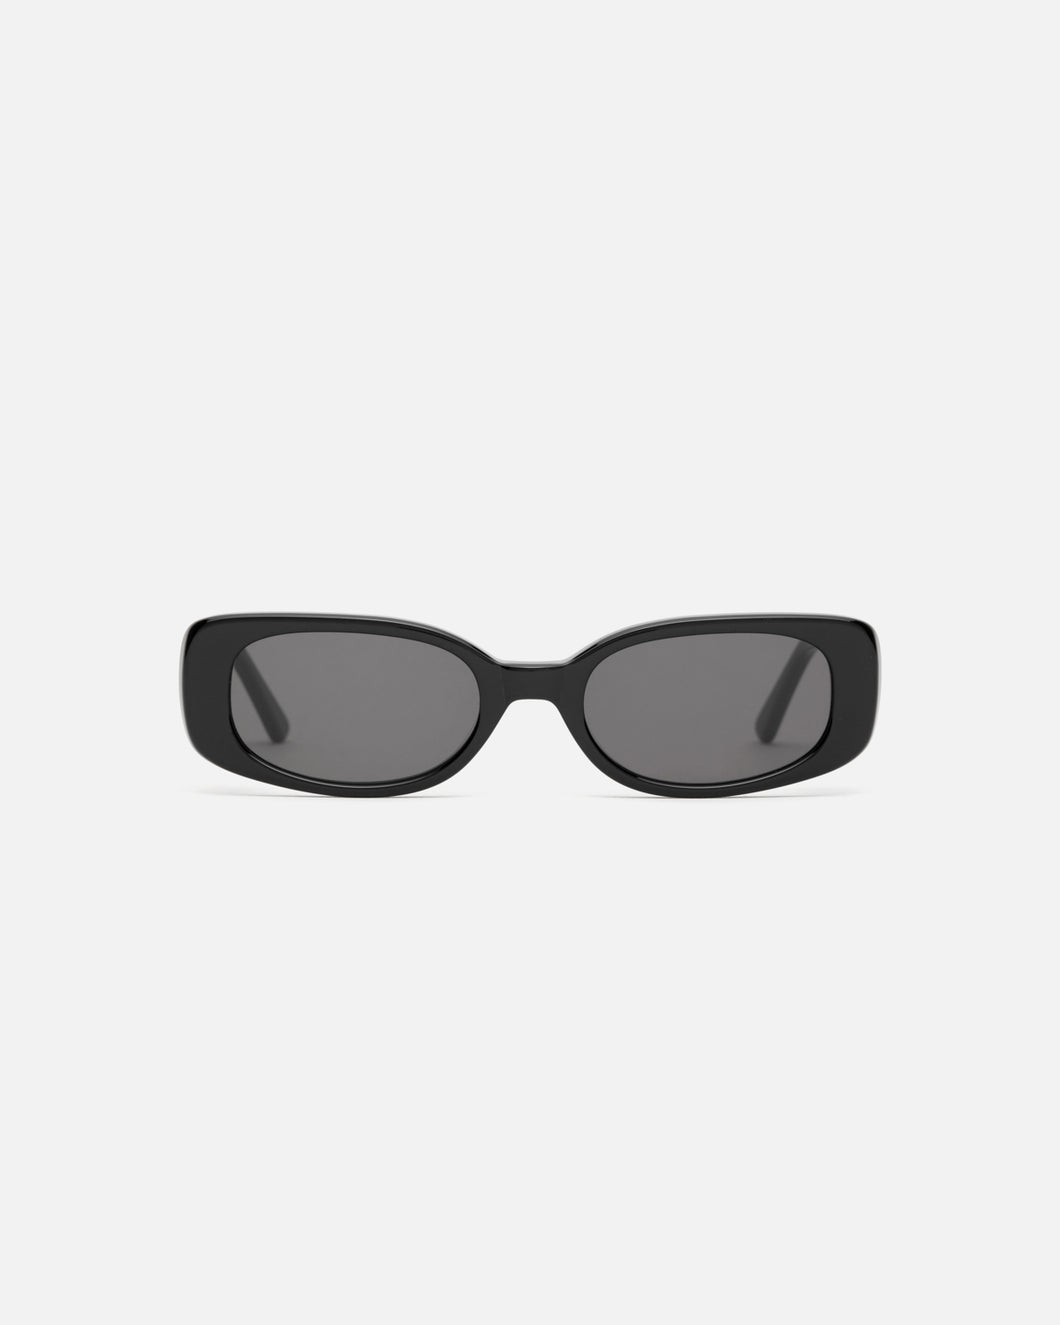 Lu Goldie Solene rectangle Sunglasses in black acetate with black lenses, front